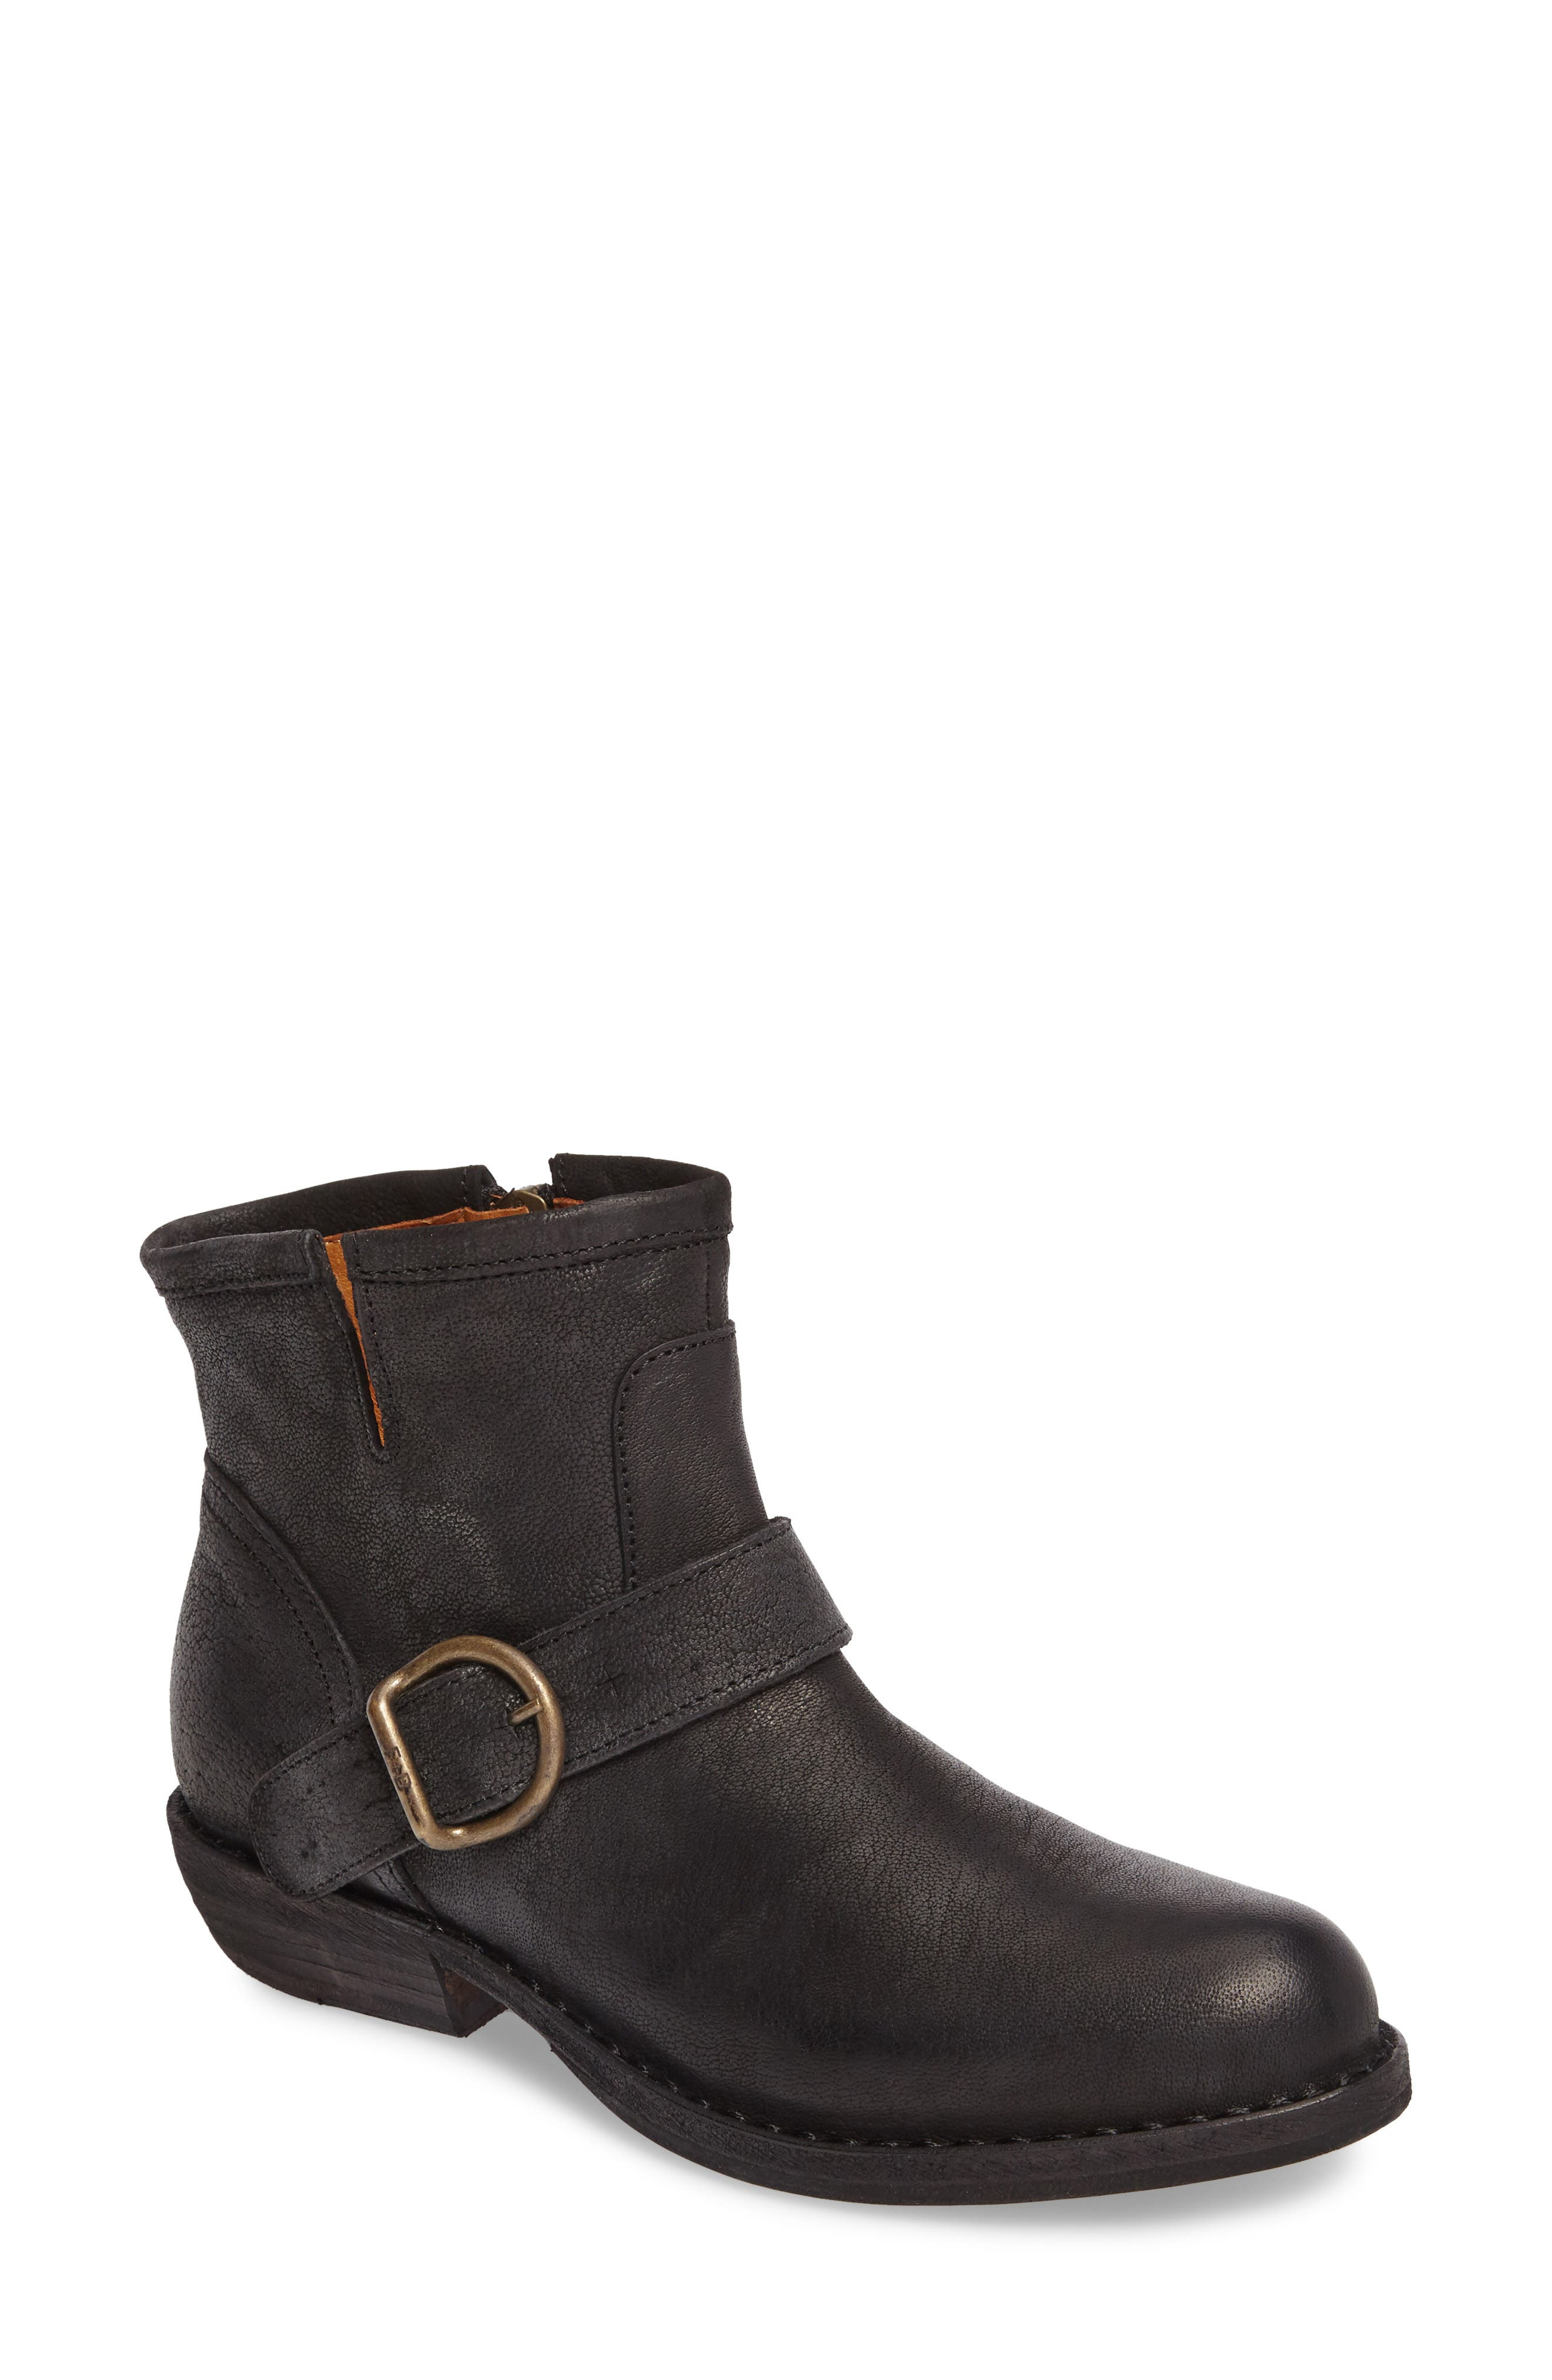 FIORENTINI + BAKER,                             'Chad' Textured Leather Bootie,                             Main thumbnail 1, color,                             002